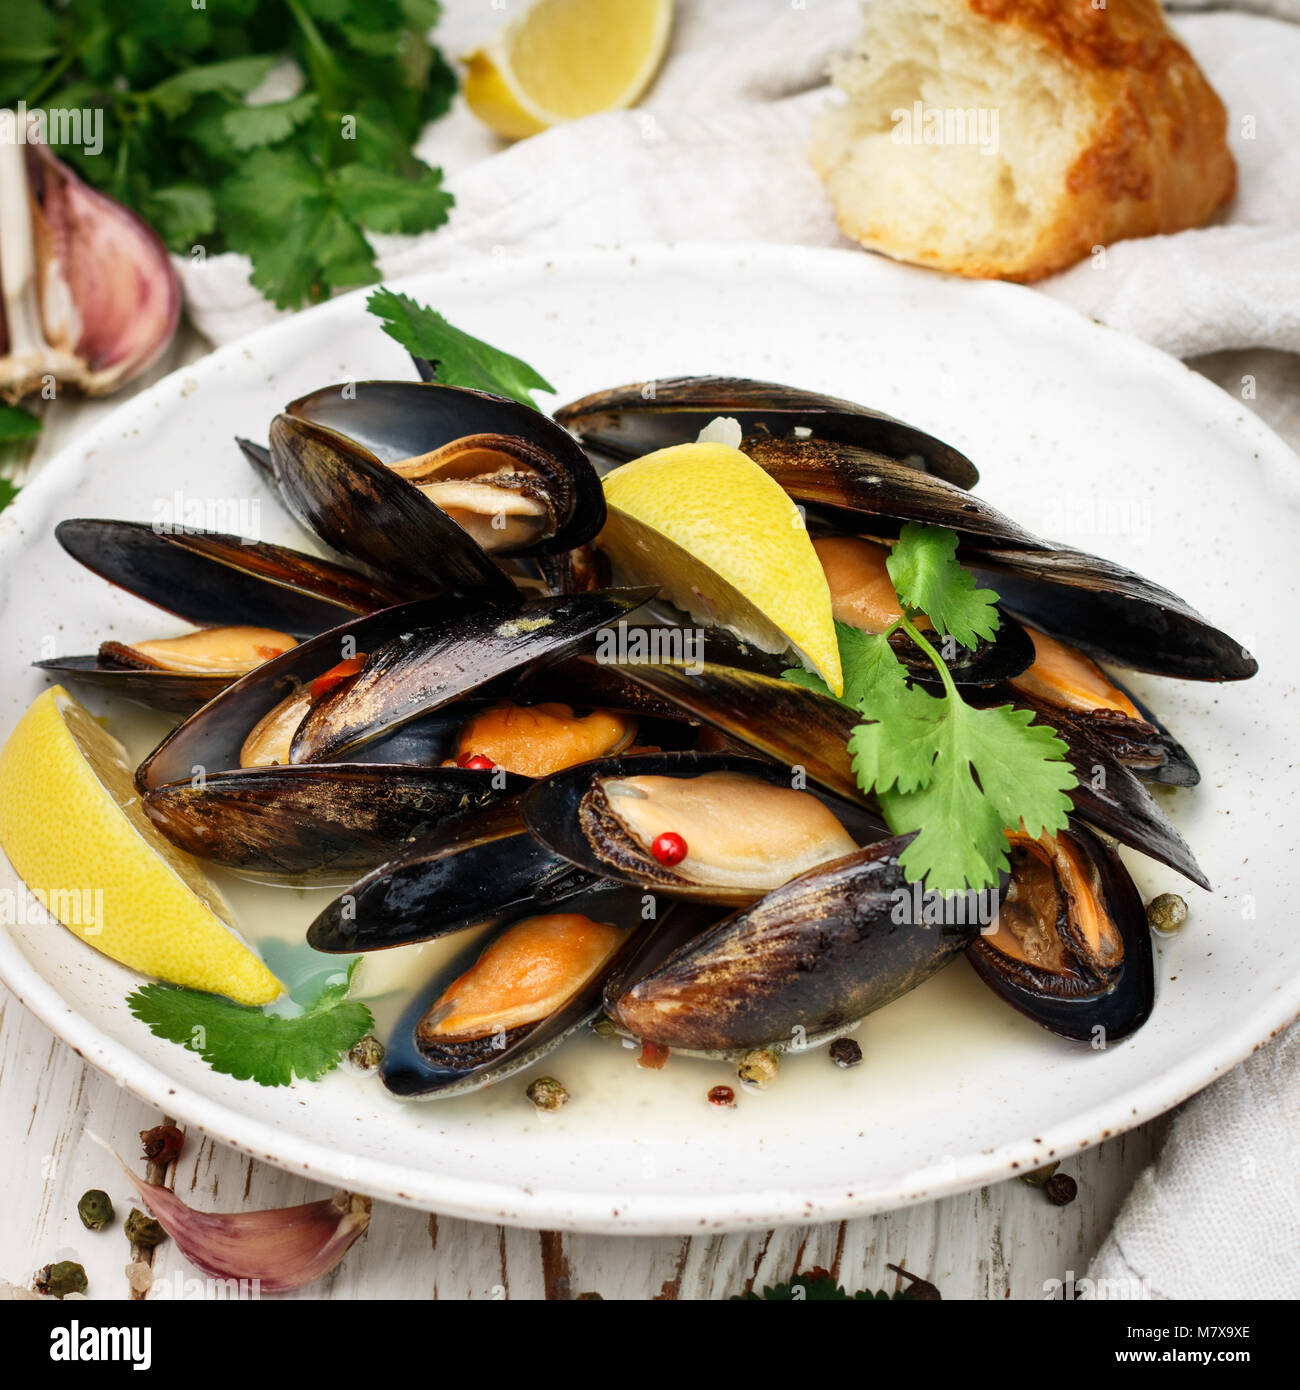 Delicious mussels in white wine with lemon, garlic, herbs and spices close up . Cilantro and pepper. Seafood. Clams - Stock Image